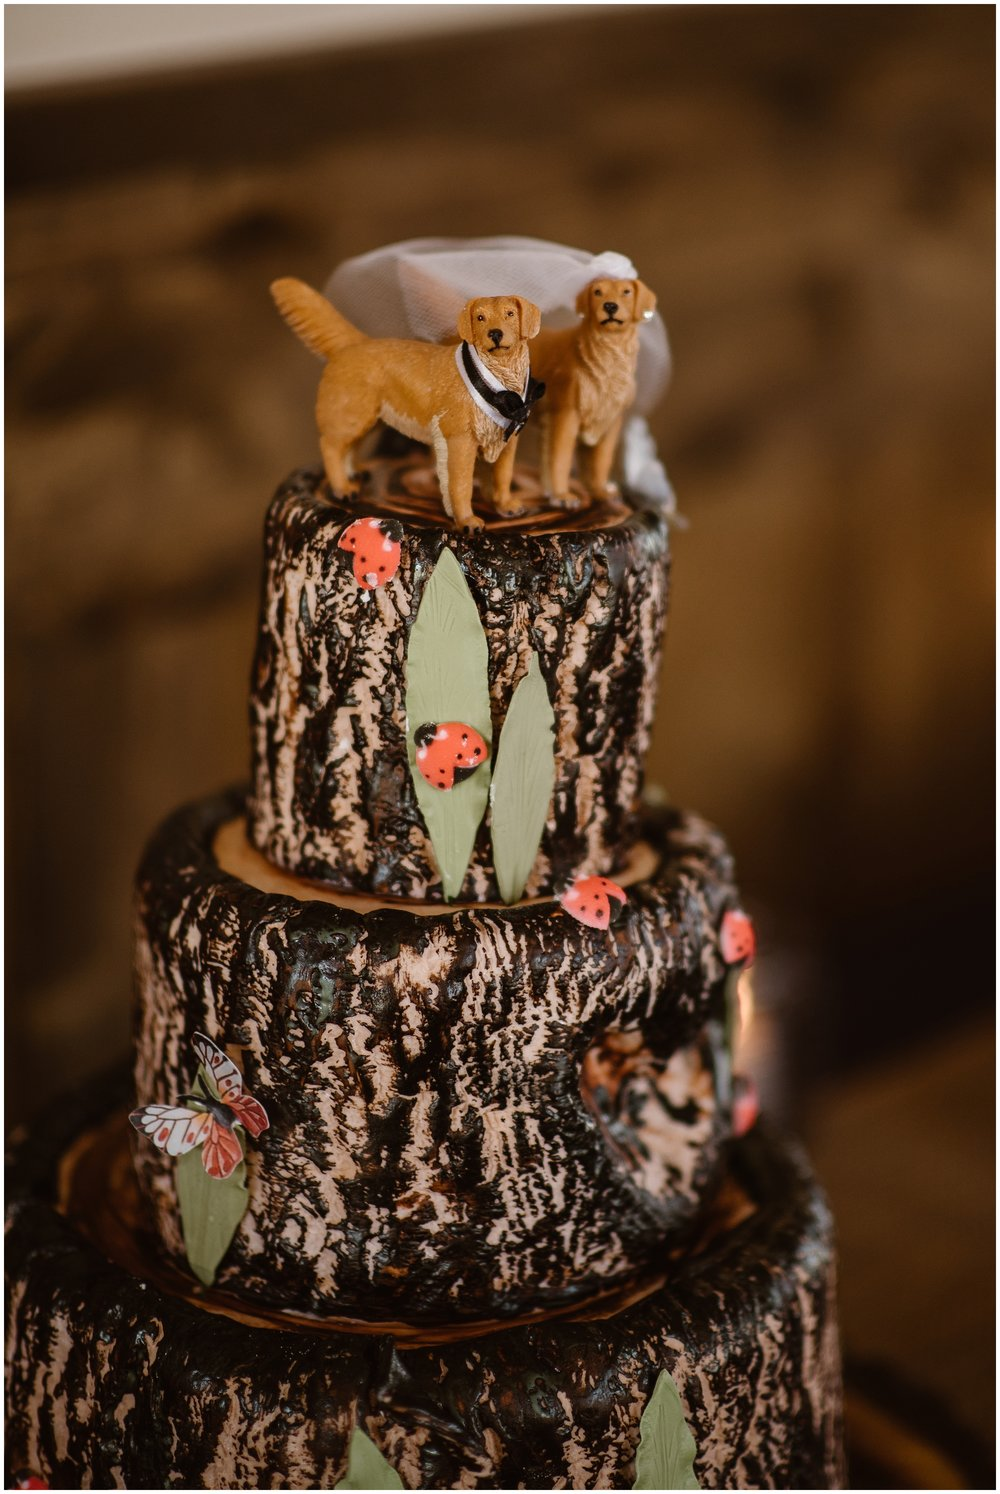 A triple-tiered wedding cake is shown in this image captured by elopement photographer Adventure Instead—-the top of the cake features two dog cake toppers. This is just one of the unique eloping ideas you can include in your elopement ceremony if you're looking for ways of how to incorporate your dog in your wedding.